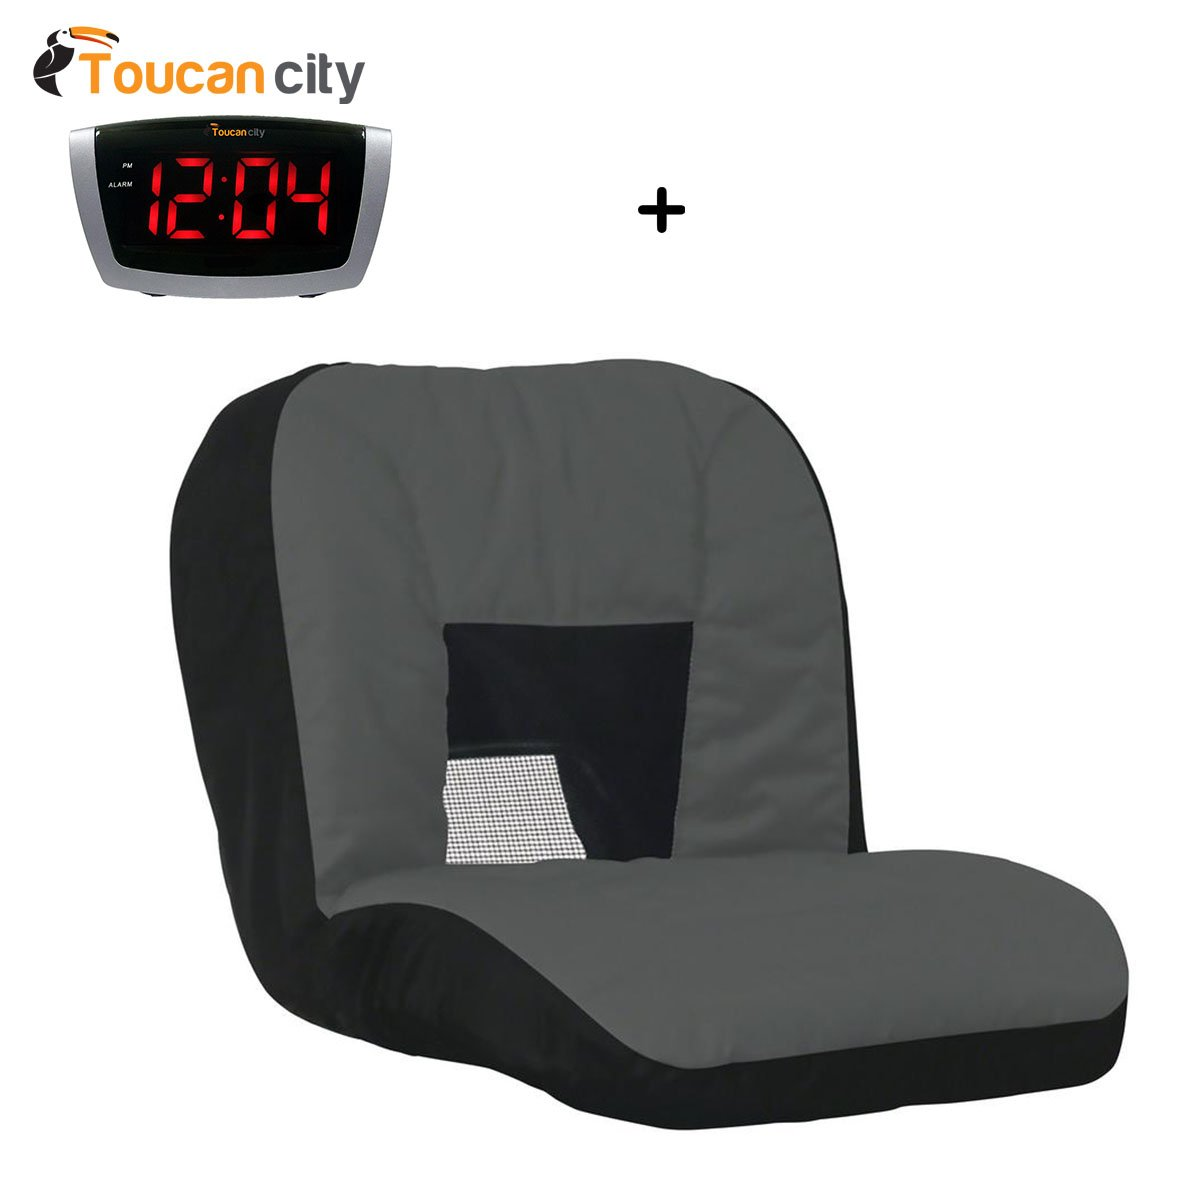 Toucan City LED Alarm clock and Cub Cadet Lawn Tractor Seat Cover with Mesh 49253